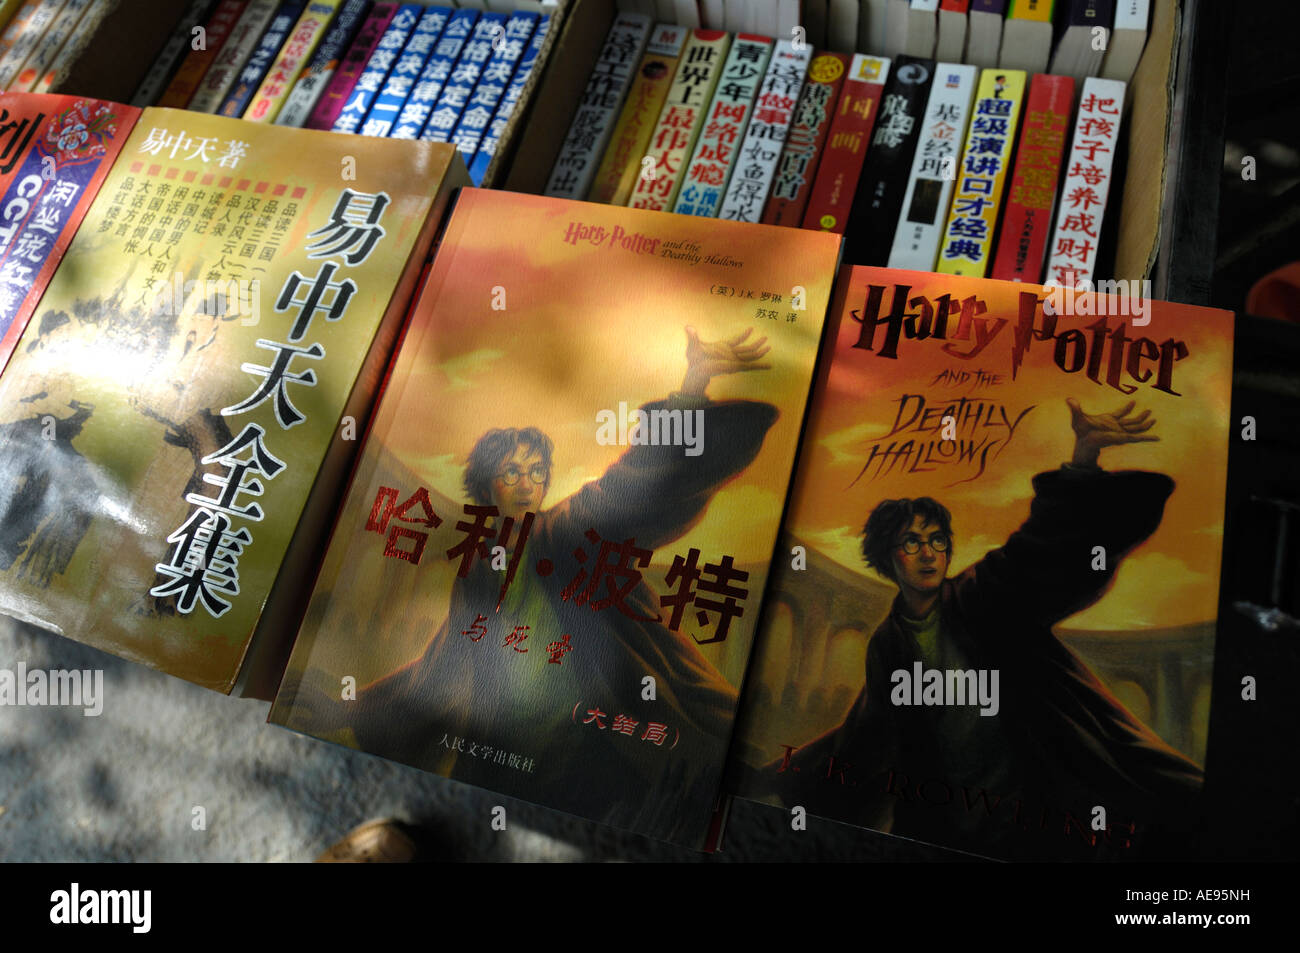 Fake Harry Potter books for sale on a Beijing street 17 Aug 2007 - Stock Image